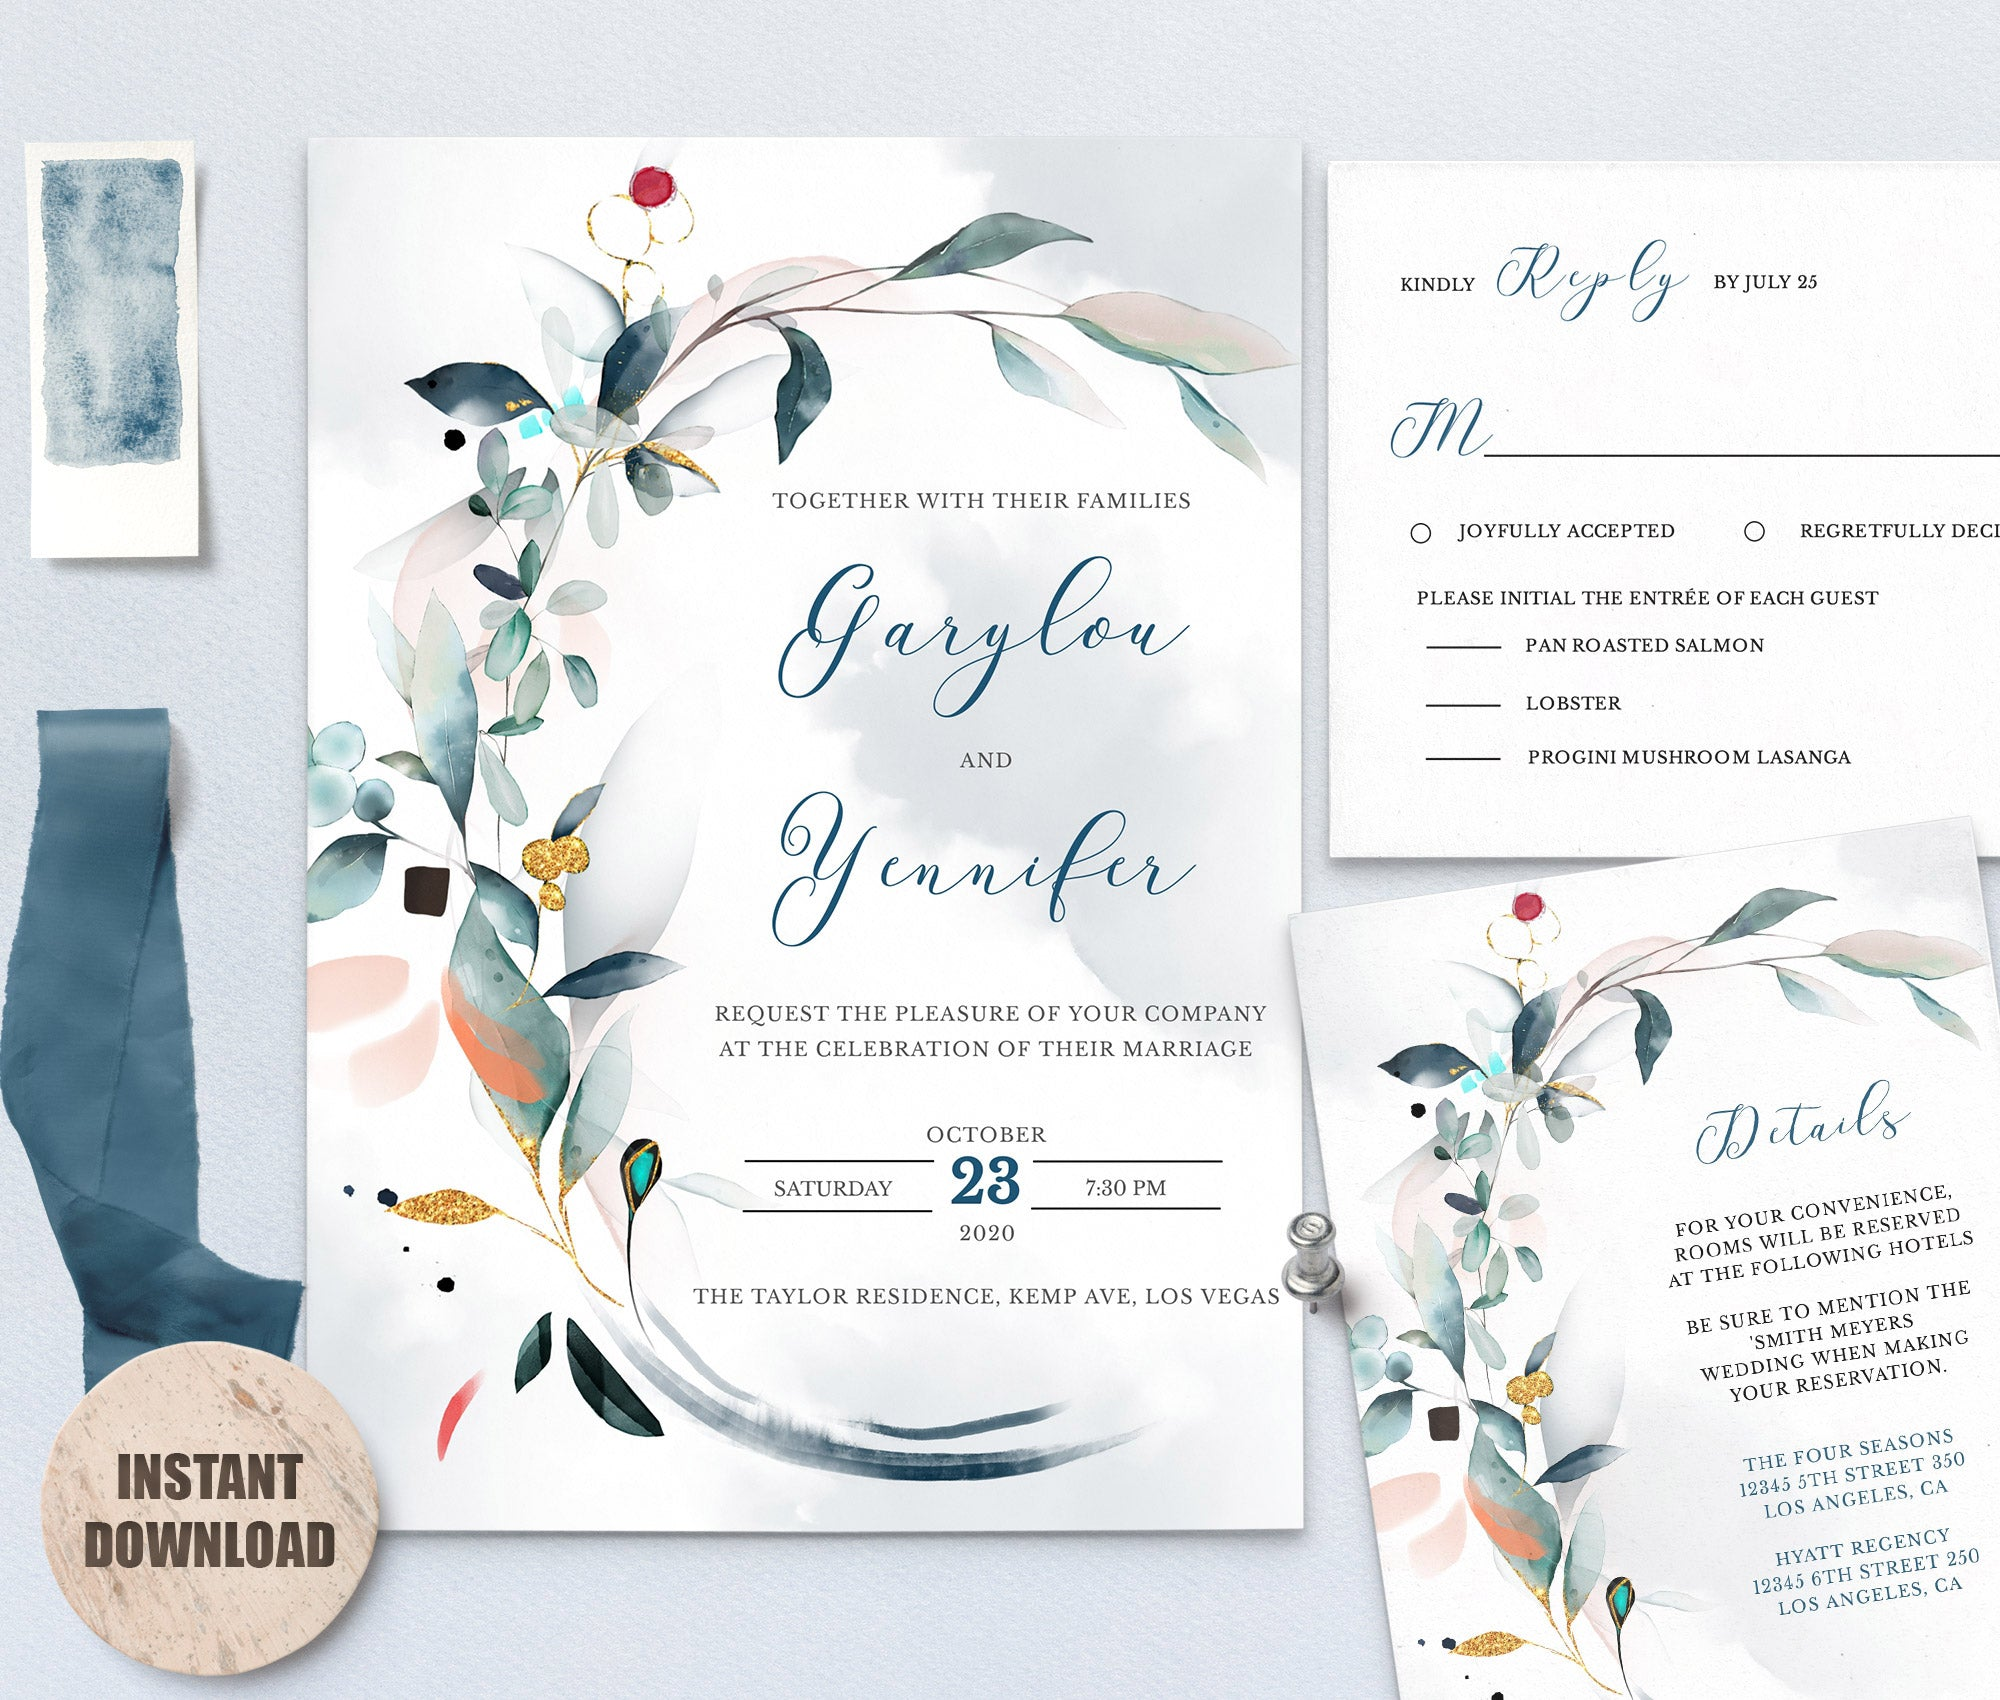 SPMR - Wedding Template Bundles set 8 - Greenlanderdesign